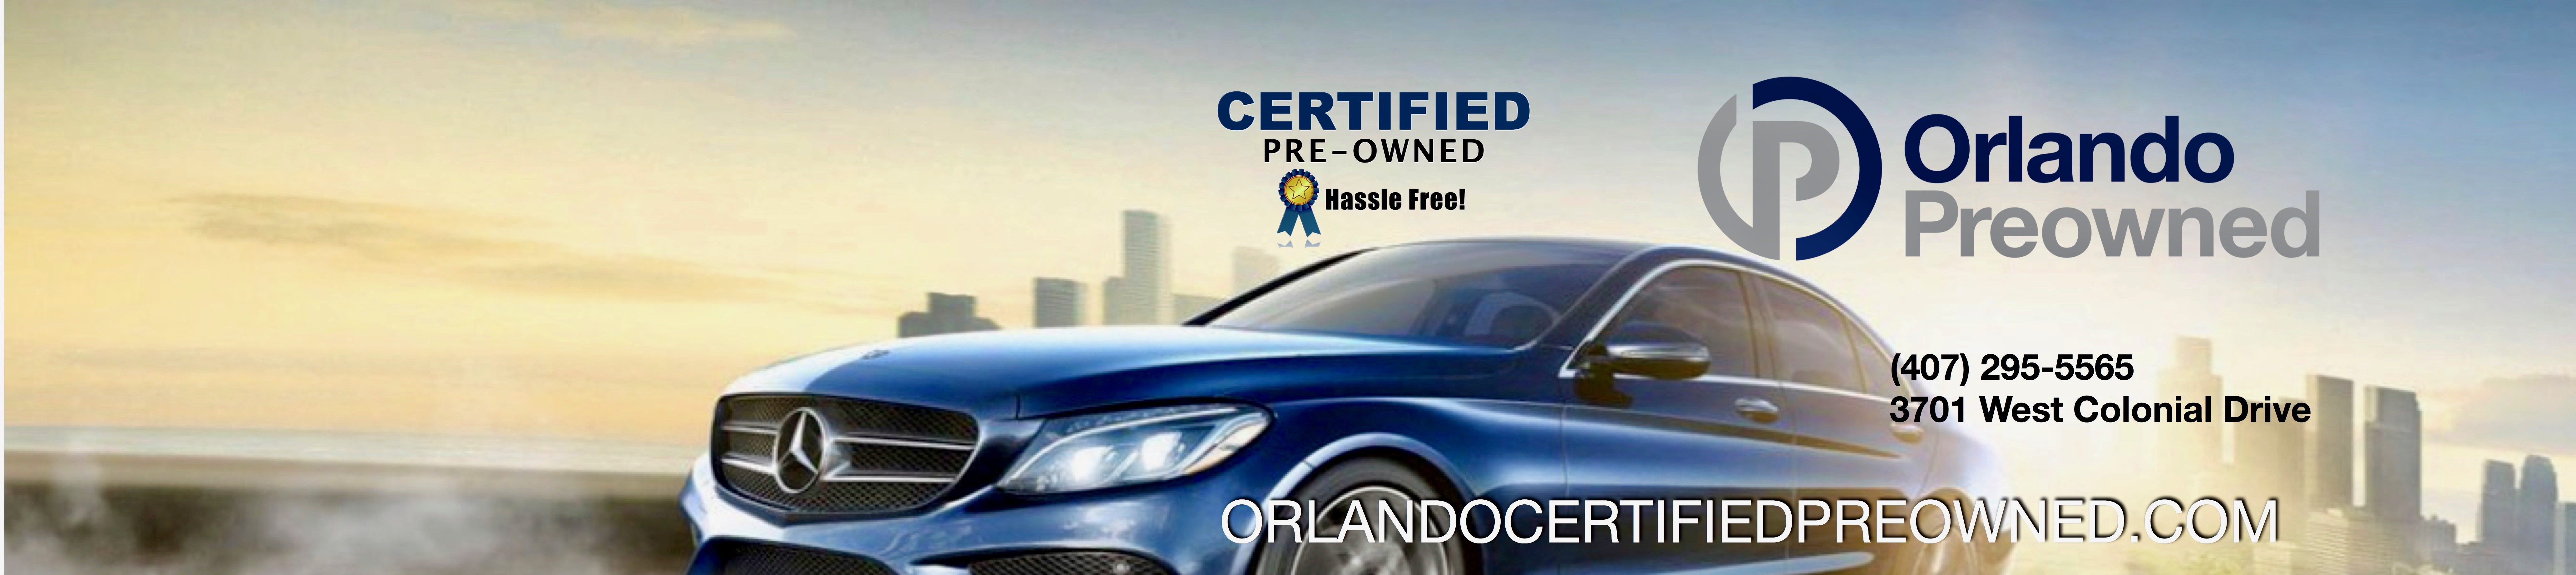 Certified Pre-owned Vehicles in Orlando